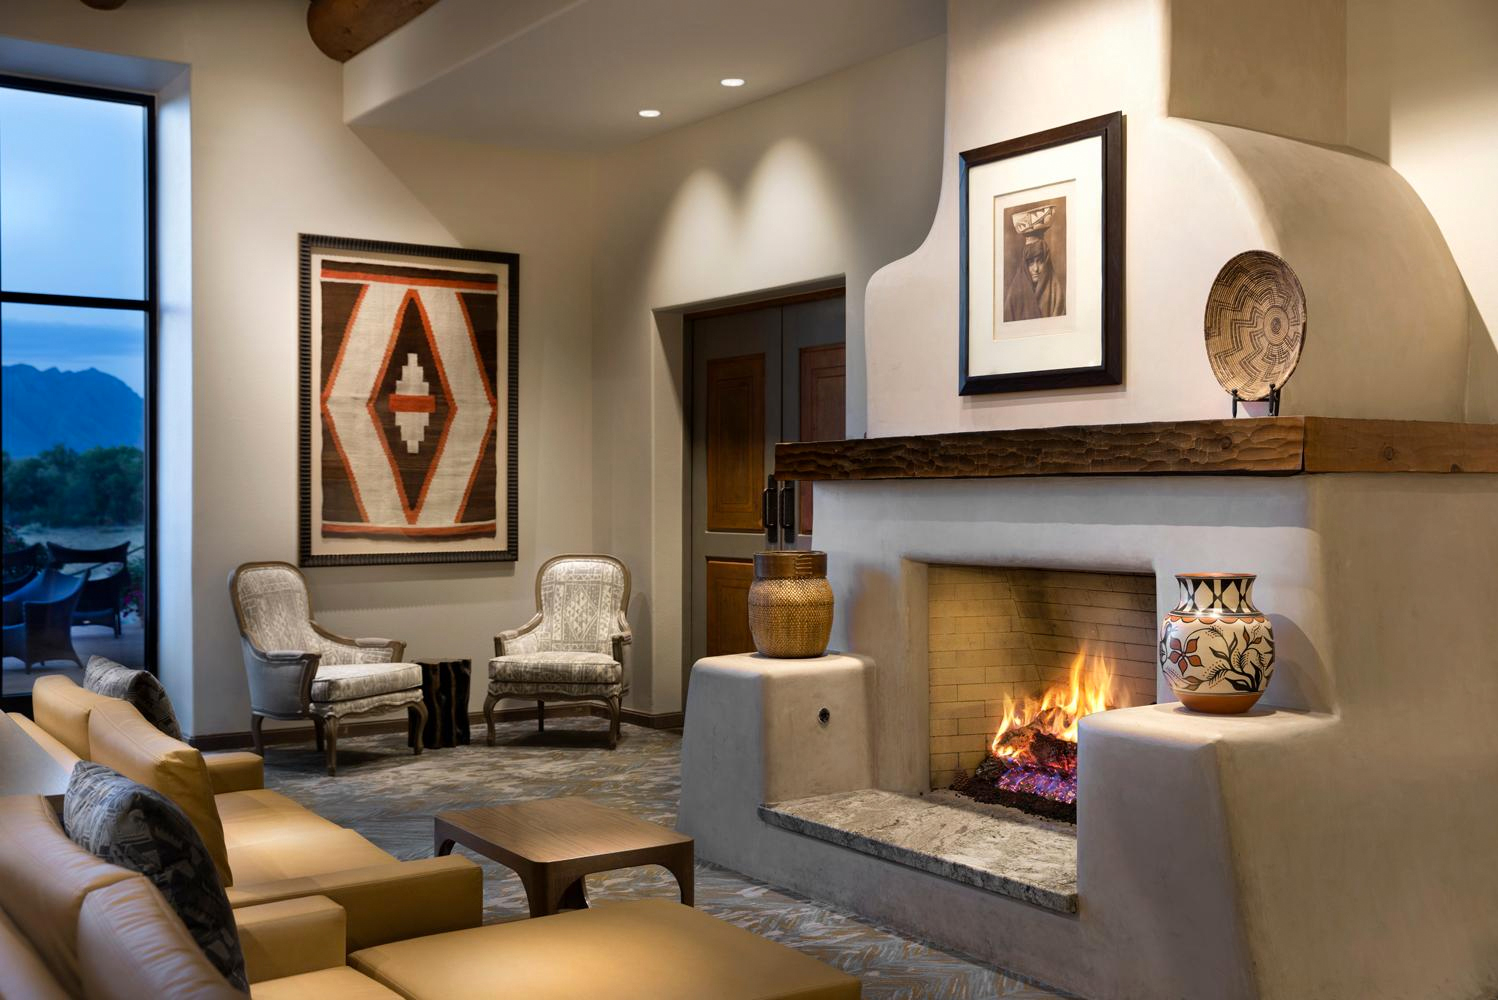 The renovation transformed the resort's interior color palette from warm earth tones to brighter off-white and muted greys.